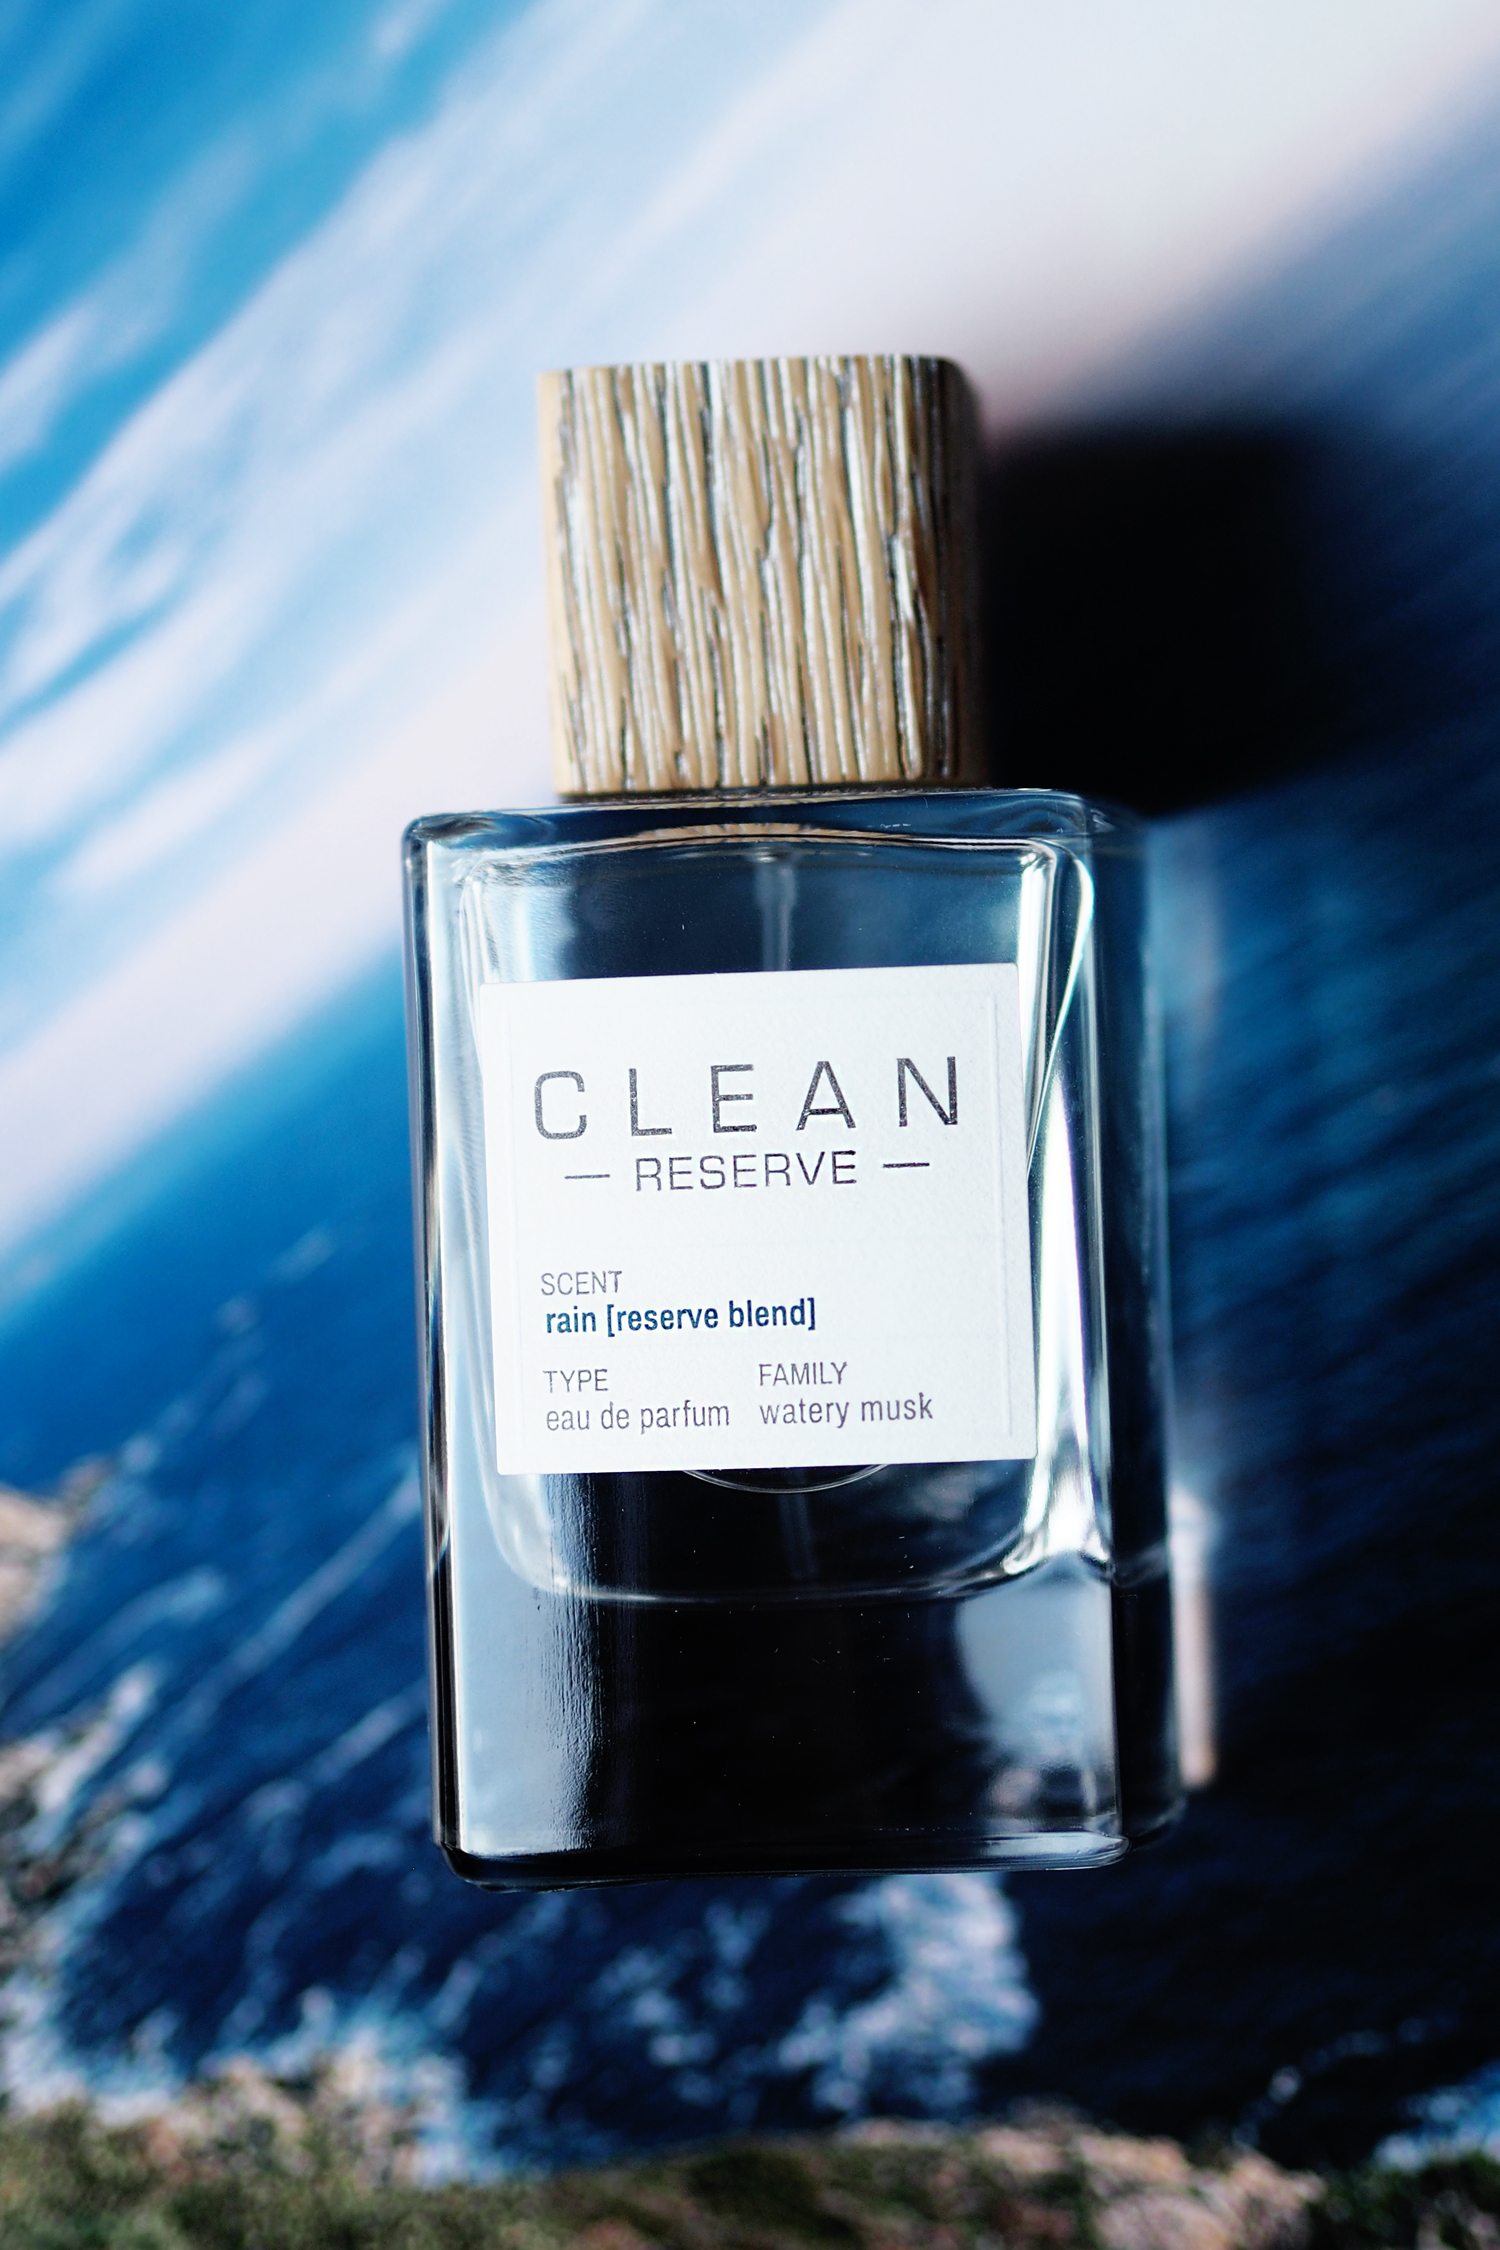 clean-reserve-fragrance-zoe-newlove-beauty-blogger-review